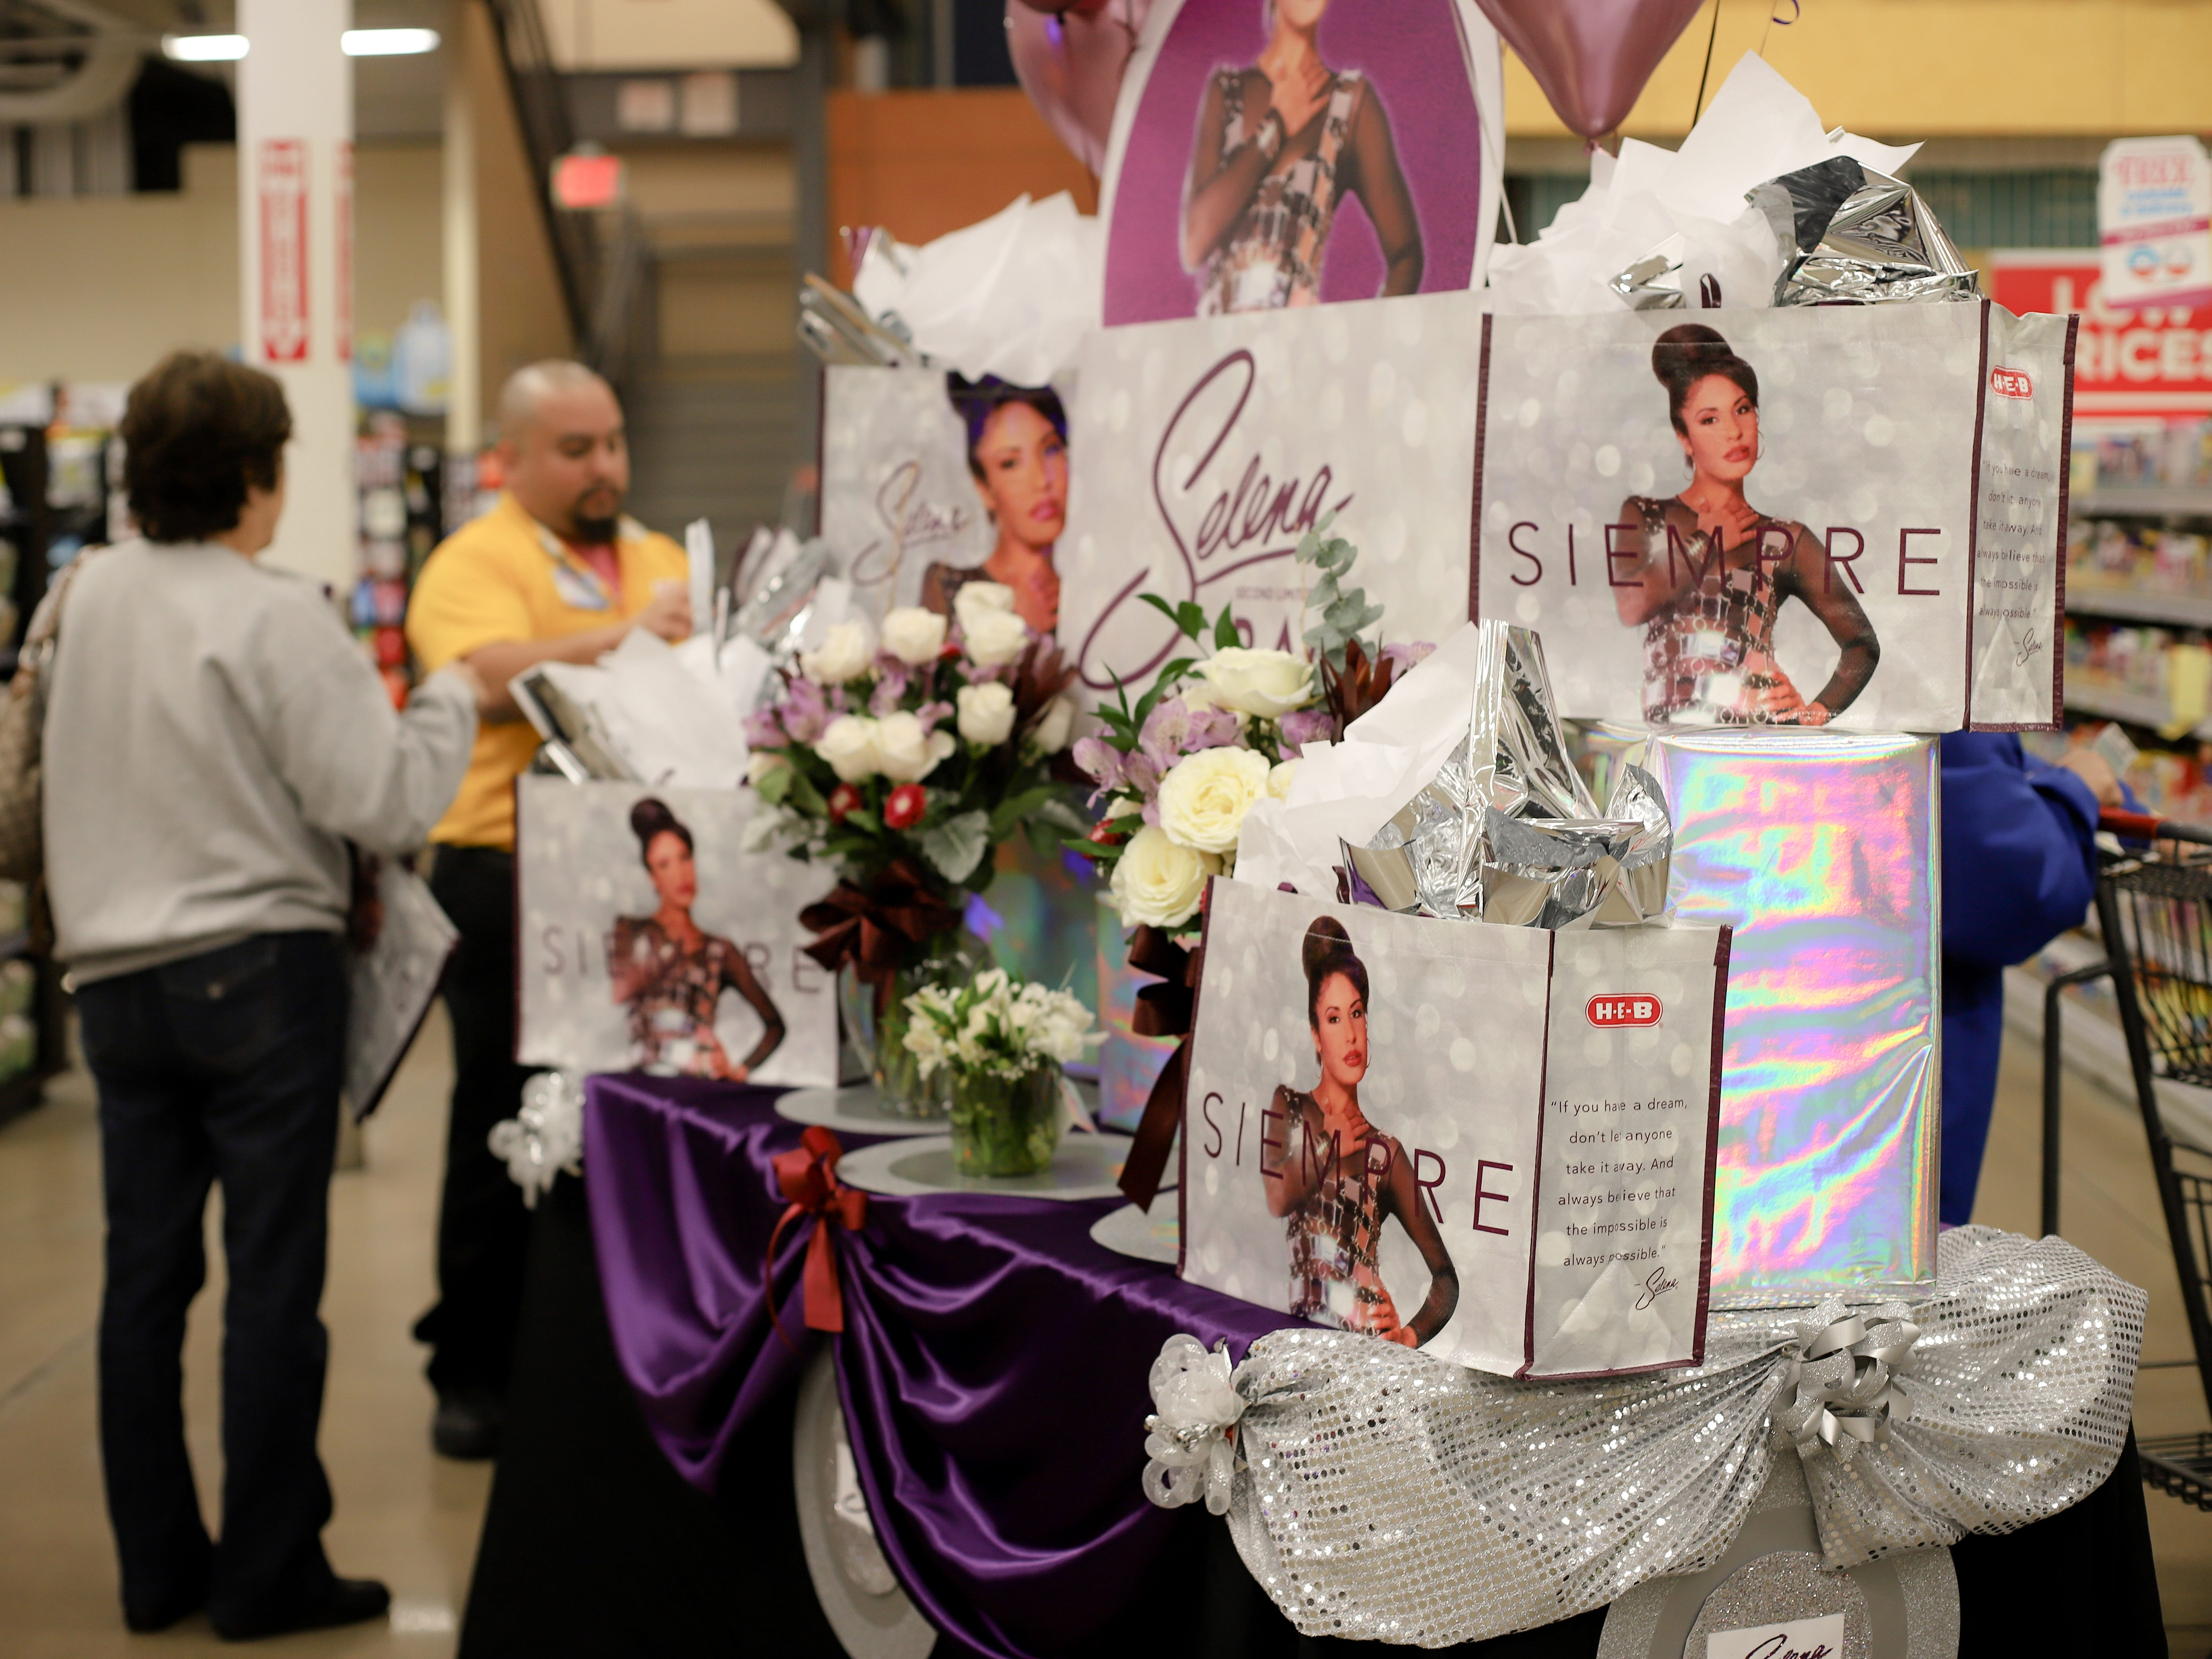 H-E-B employees had a table to display the Selena reusable bags on Dec. 6, 2018. Employees handed two bags to each customer.